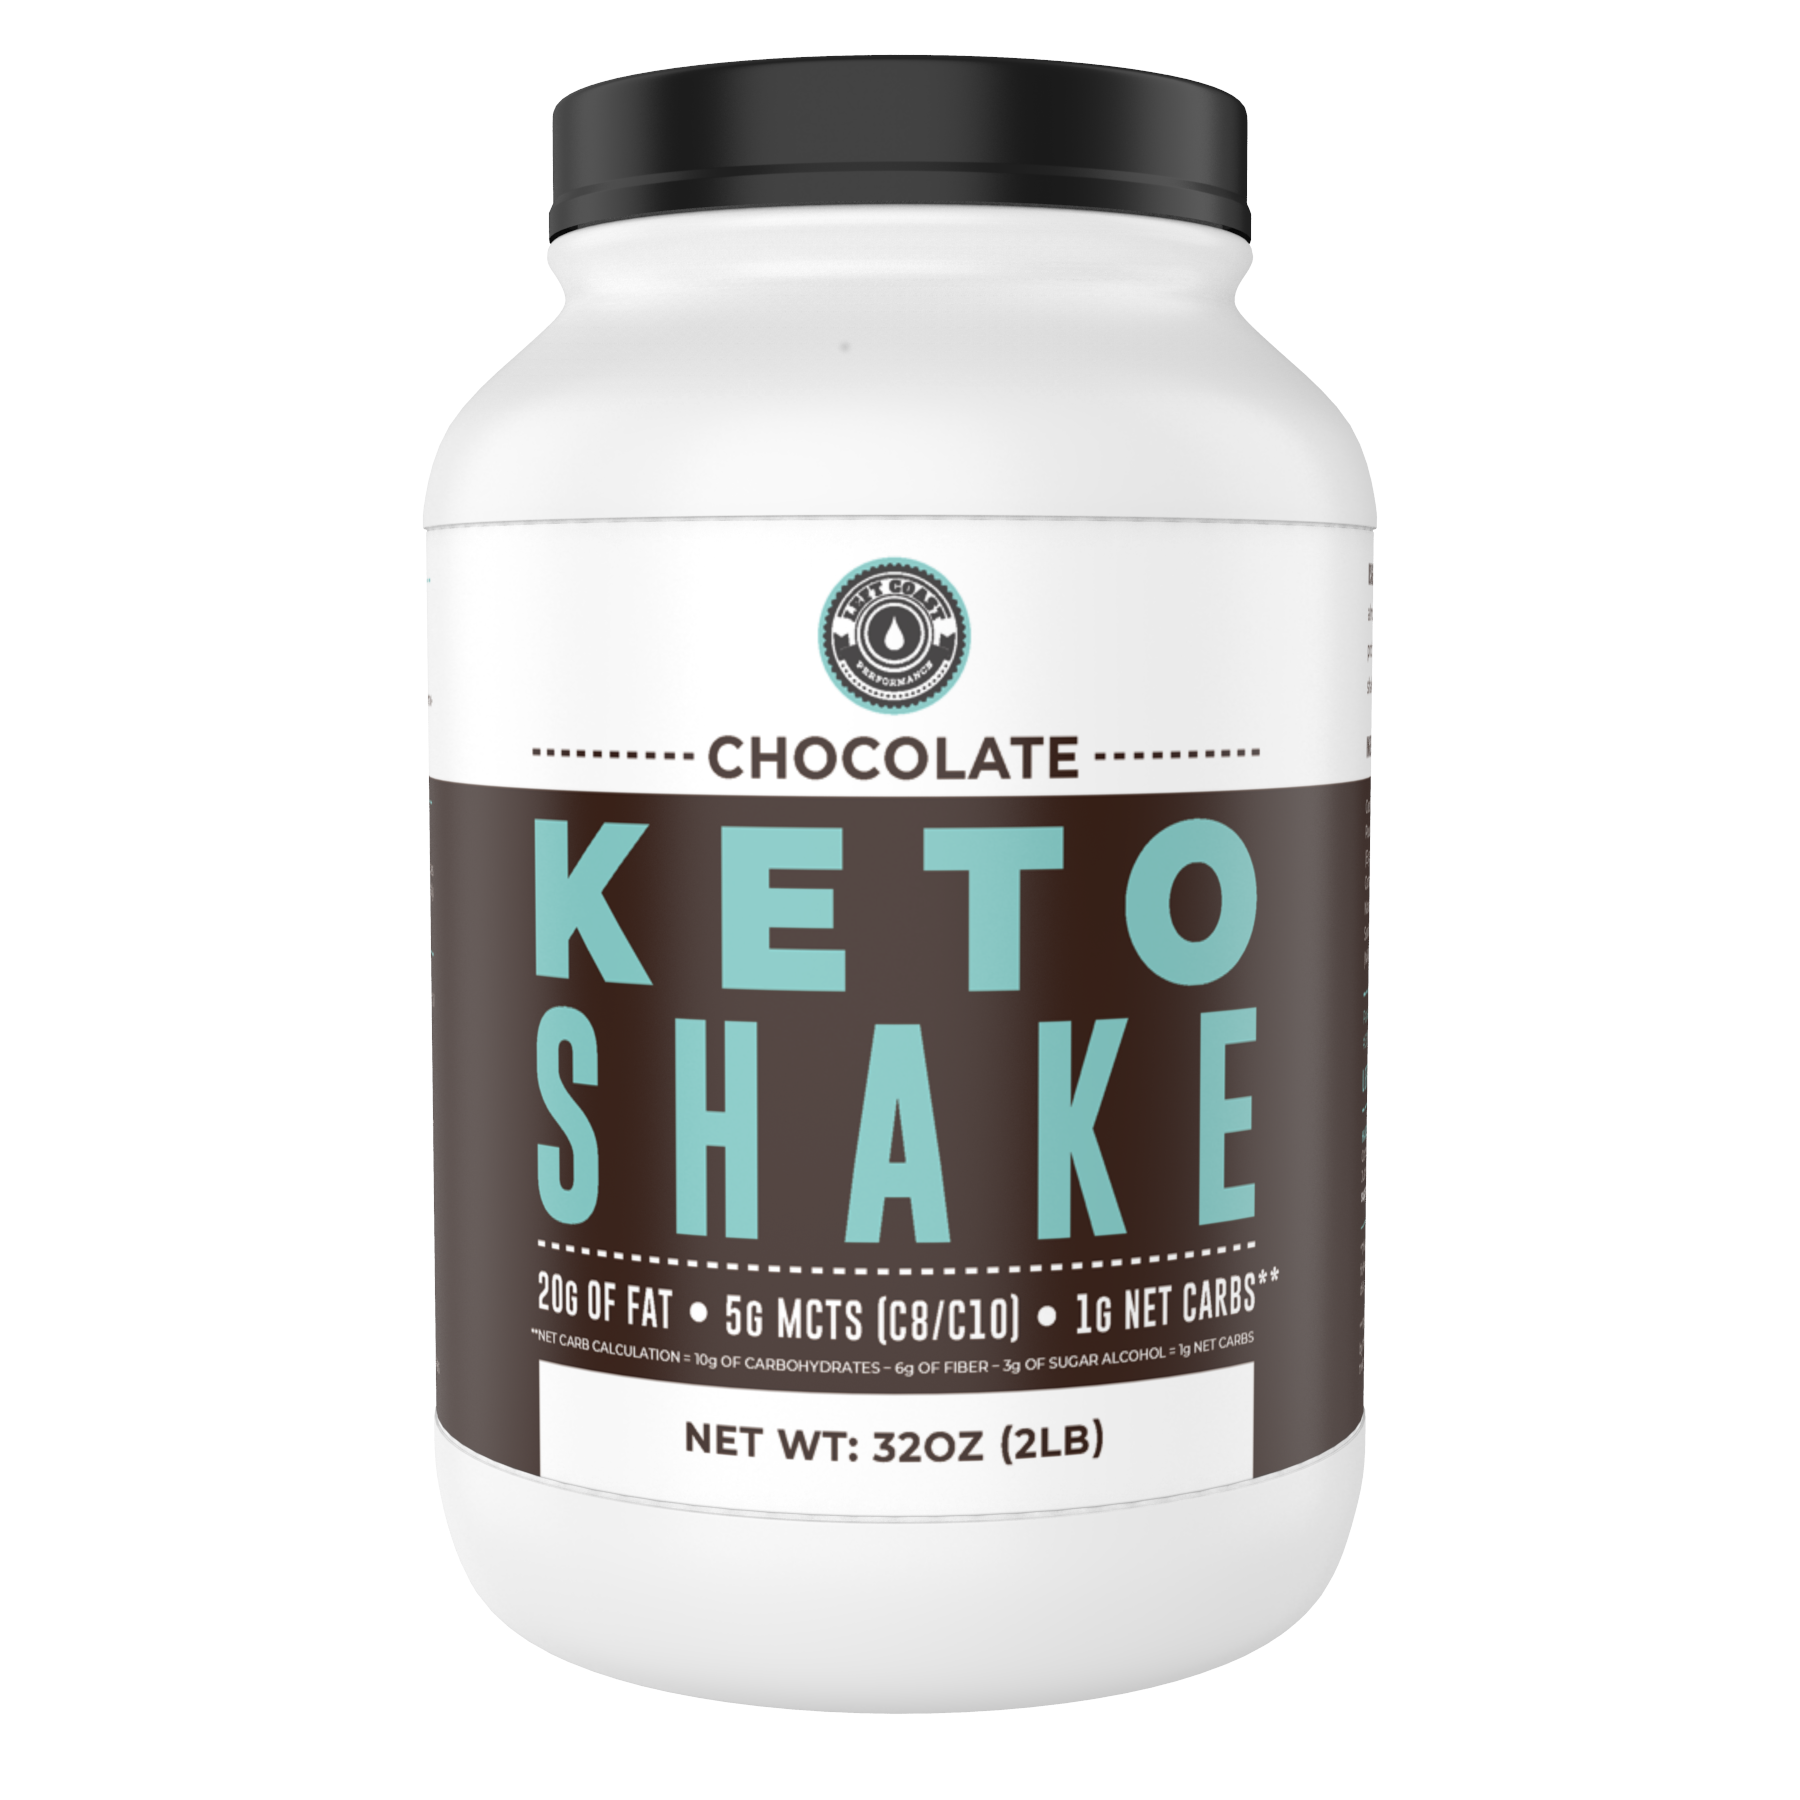 Keto Shake - Chocolate, 2lbs